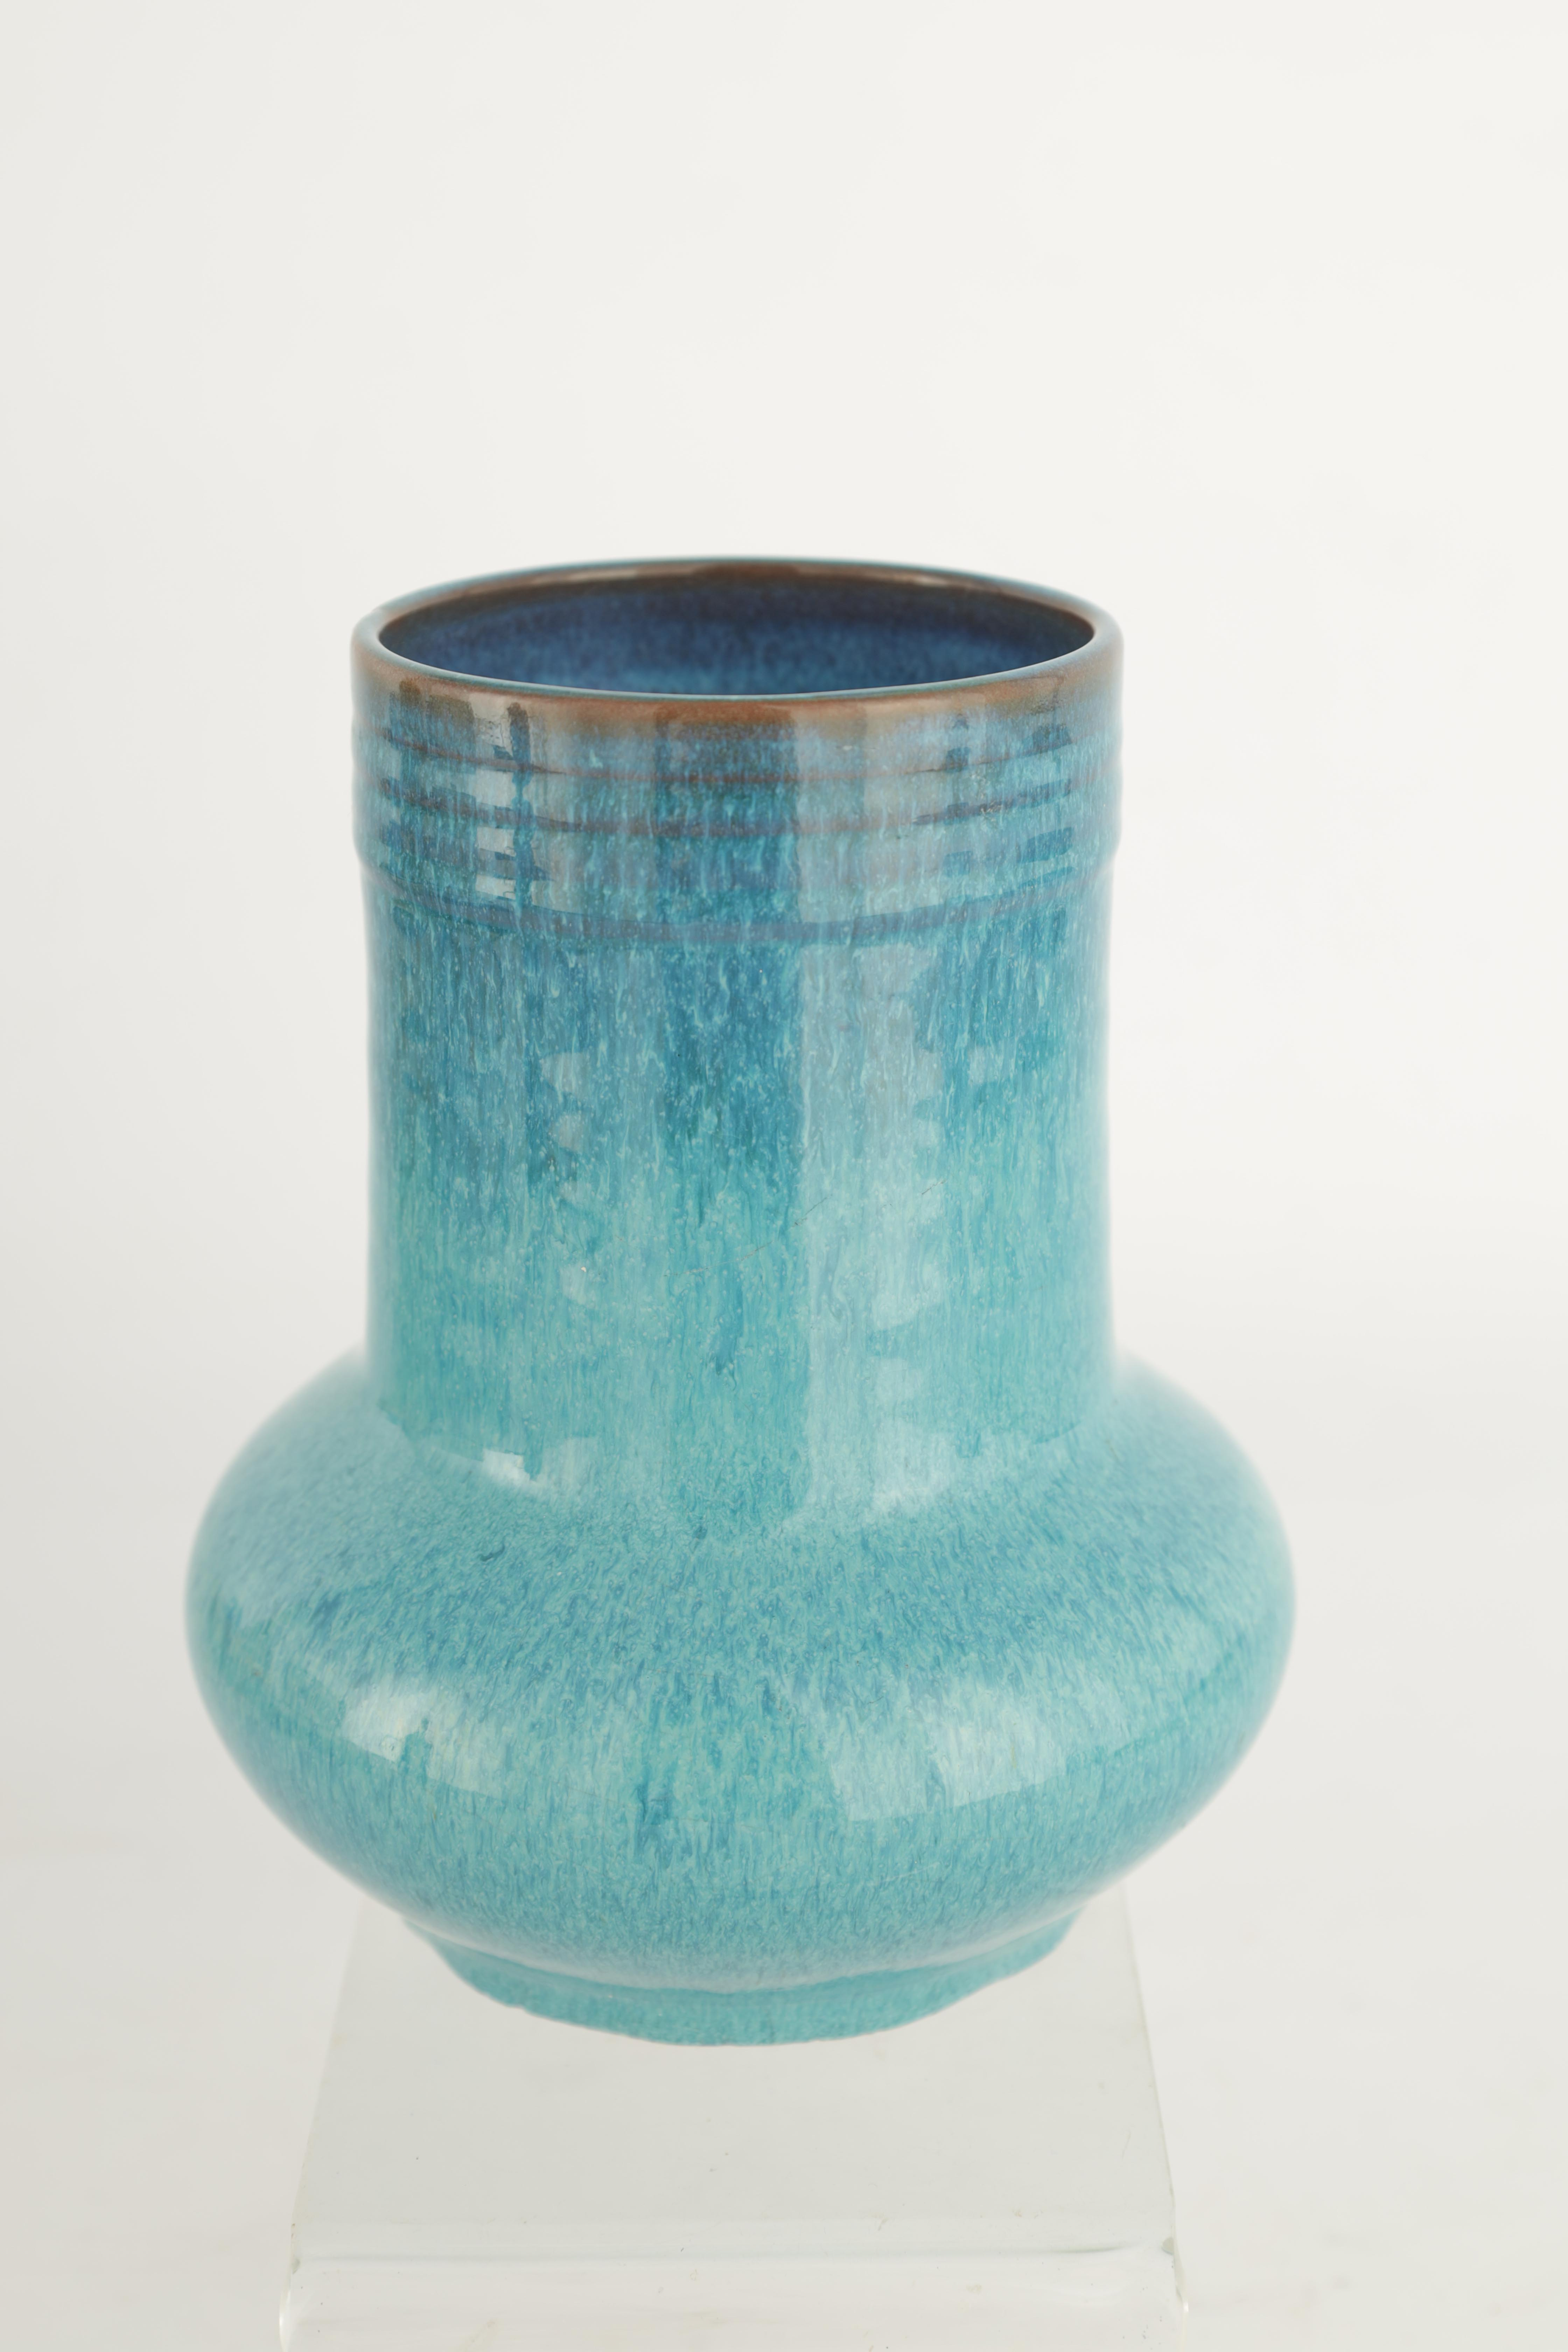 A CARTER STABLER AND ADAMS POOLE SQUAT BULBOUS VASE WITH CYLINDRICAL NECK AND RIBBED RIM decorated - Image 11 of 14